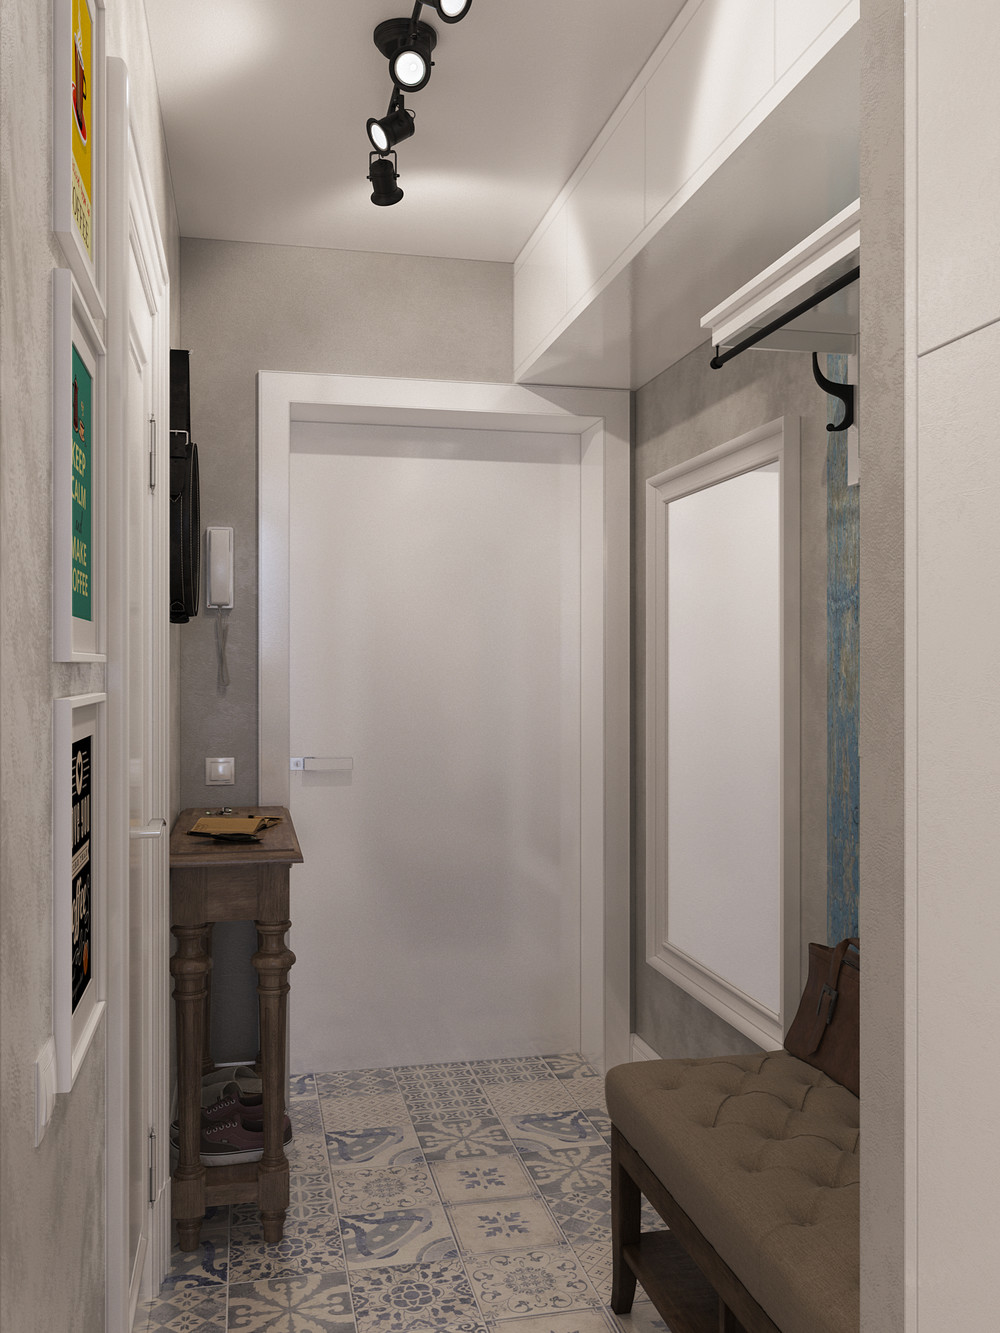 Foyer Ideas Small : Designing for super small spaces micro apartments